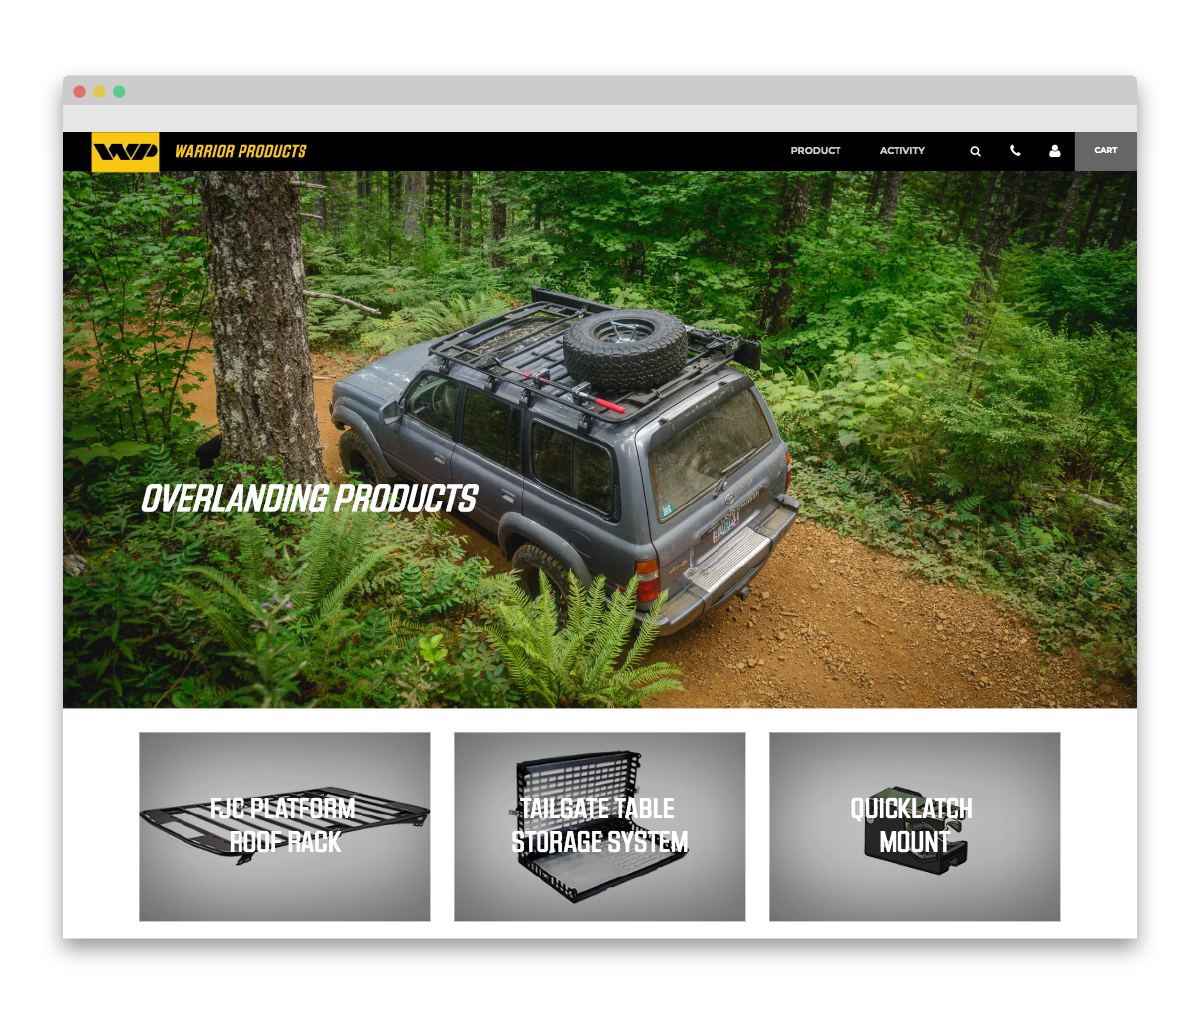 Warrior Products custom landing page - overlanding